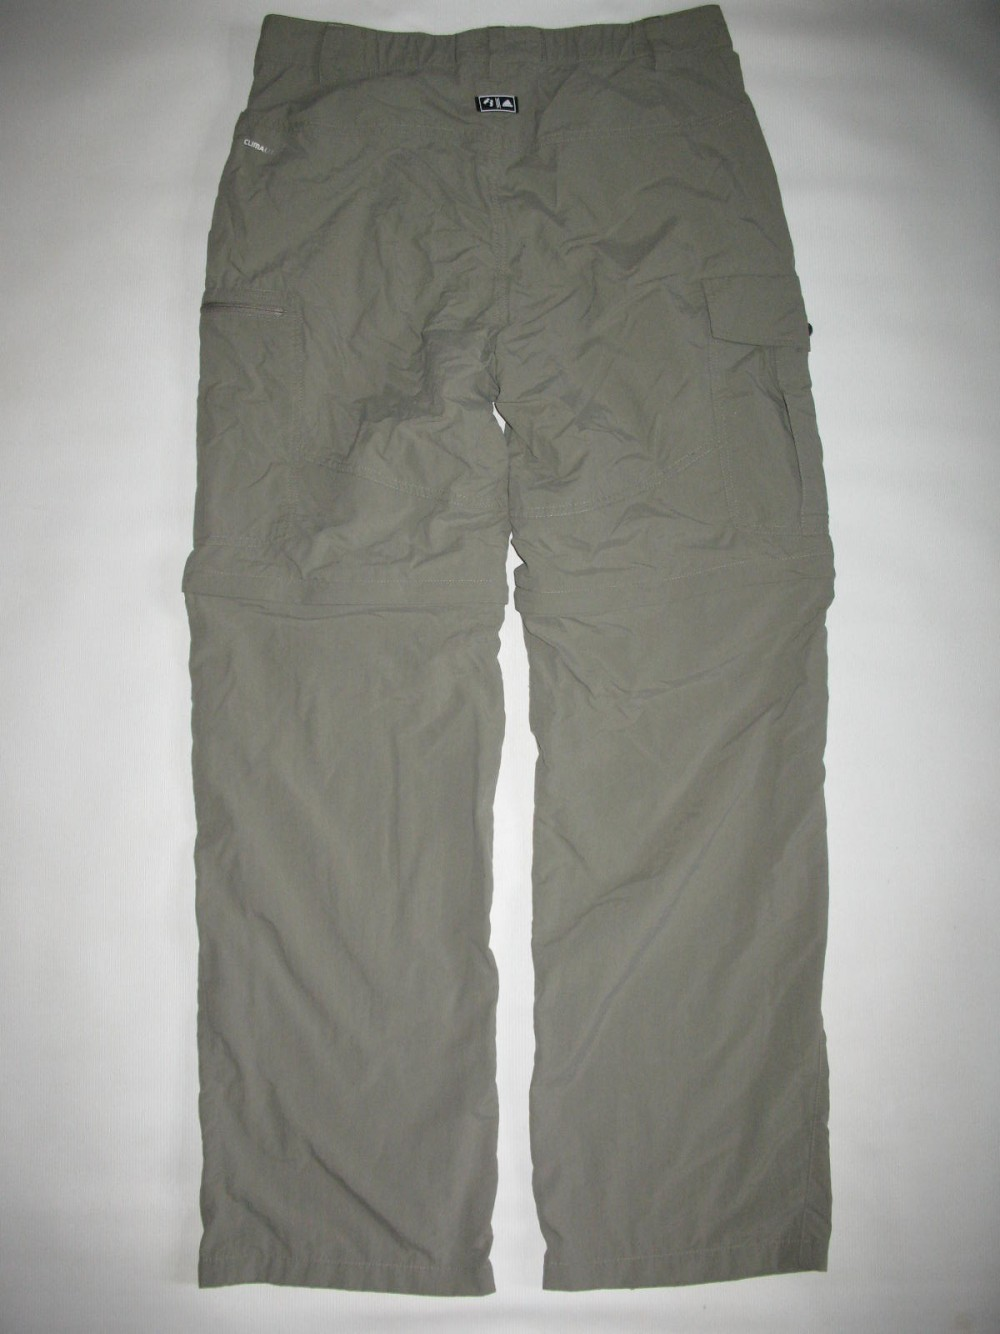 Штаны ADIDAS ht hike 2in1 outdoor pants (размер 50/L) - 12